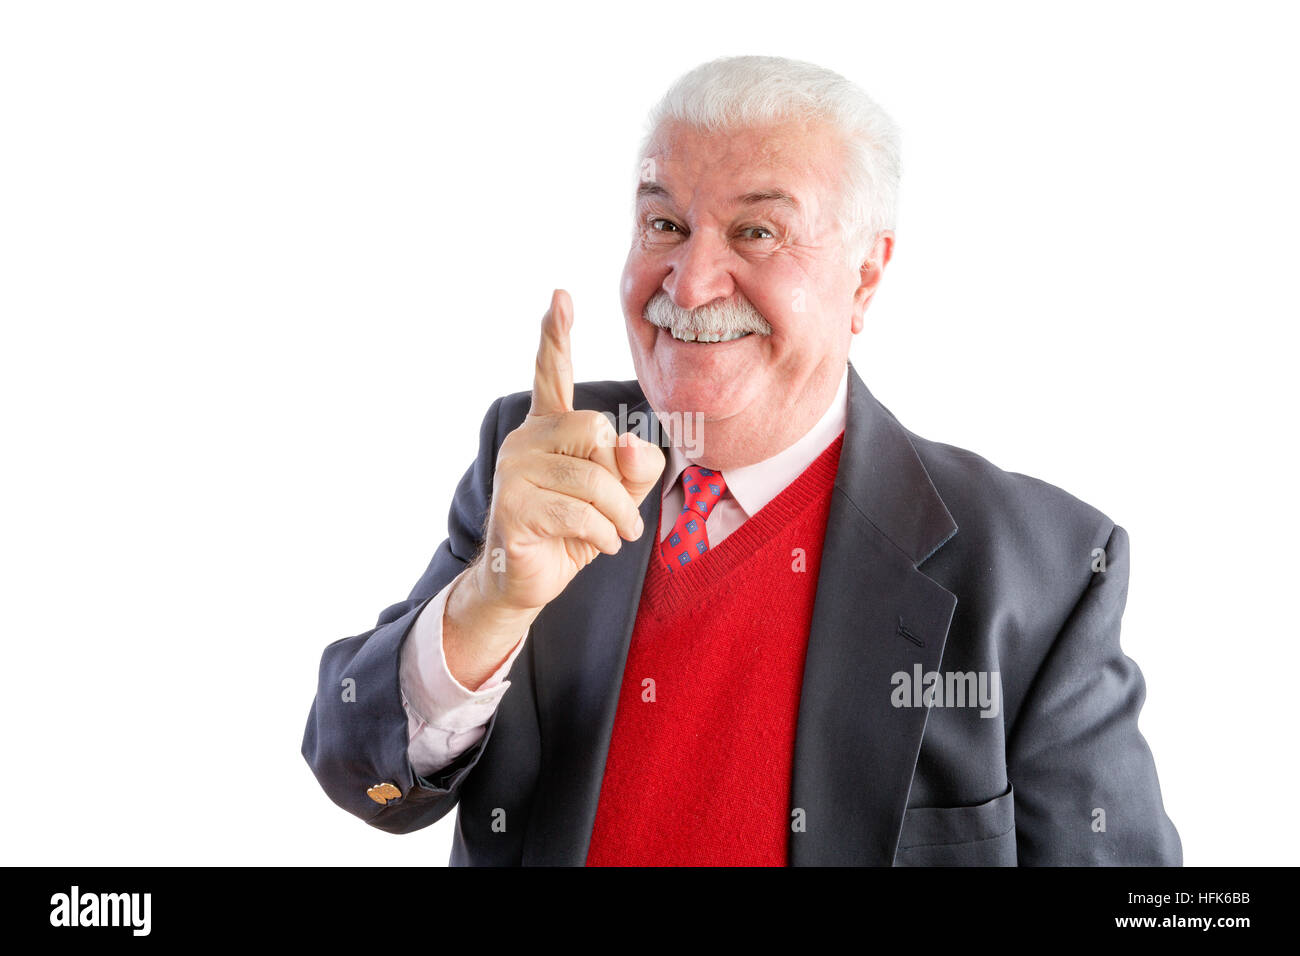 Close up of cheeky senior wearing a business suit with red sweater smiles at the camera and points up - Stock Image